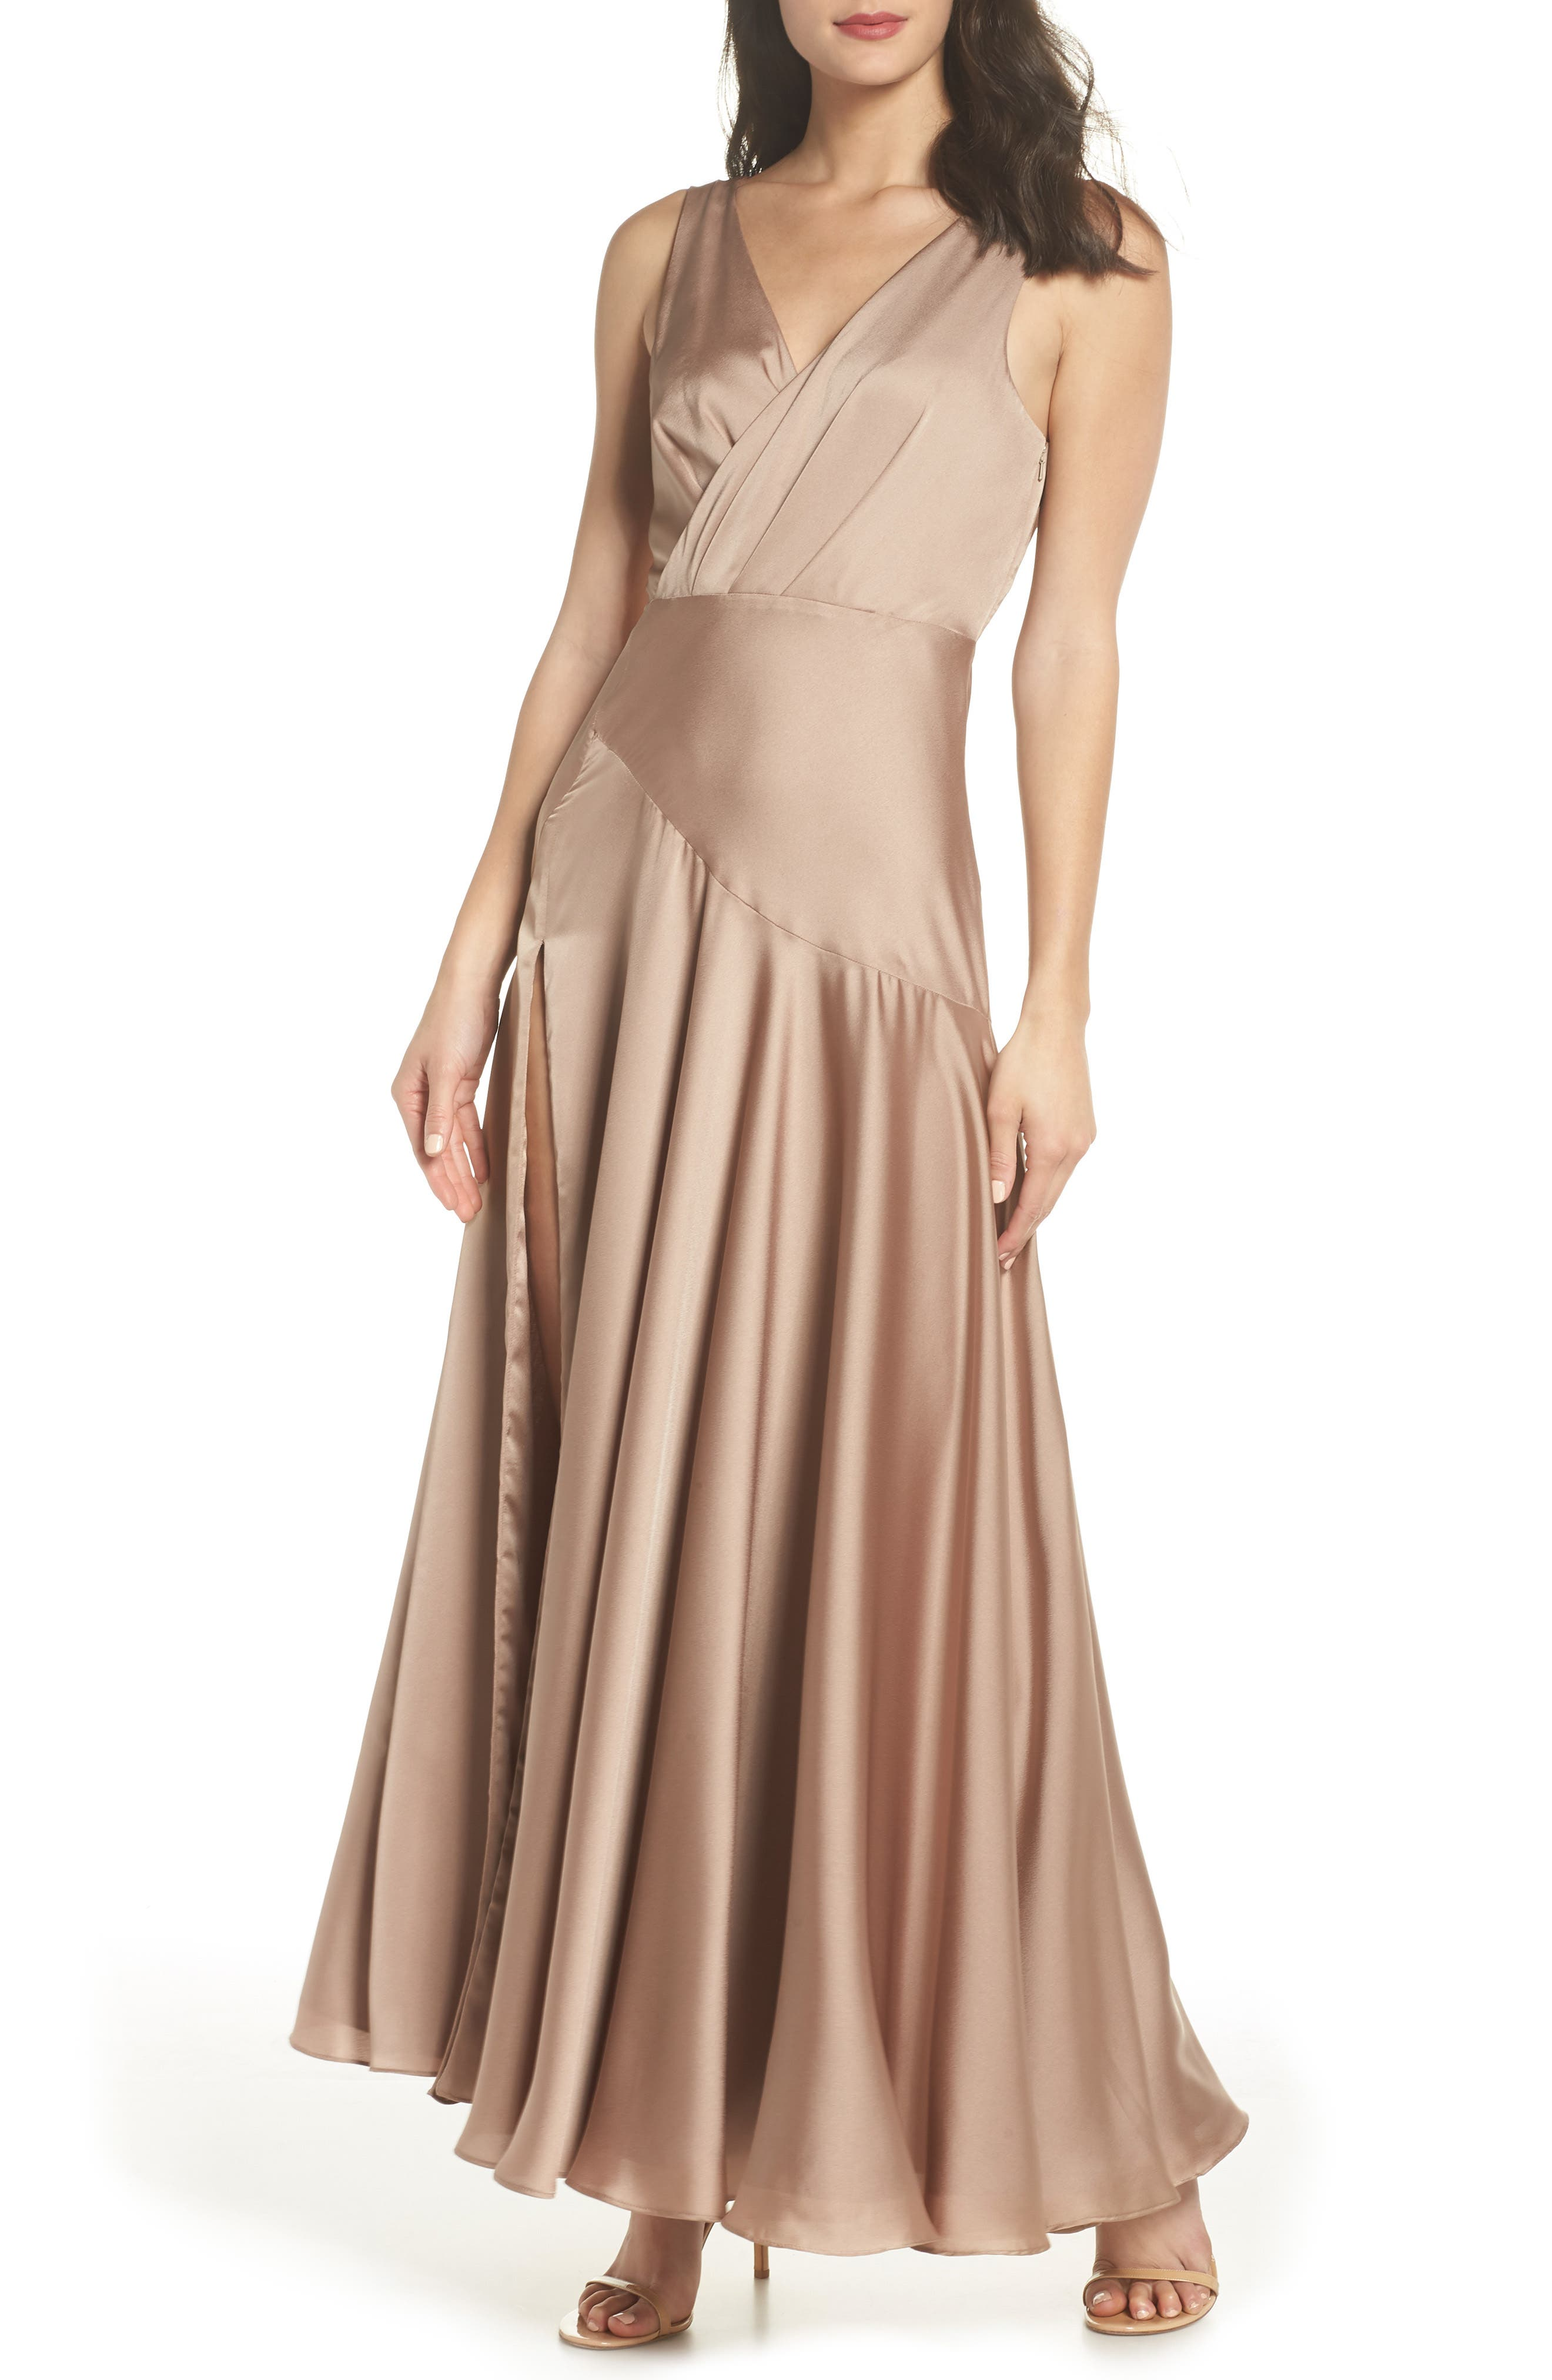 1930s Outfit Ideas for Women Womens Fame And Partners The Escala Satin Gown Size 6 - Beige $279.00 AT vintagedancer.com